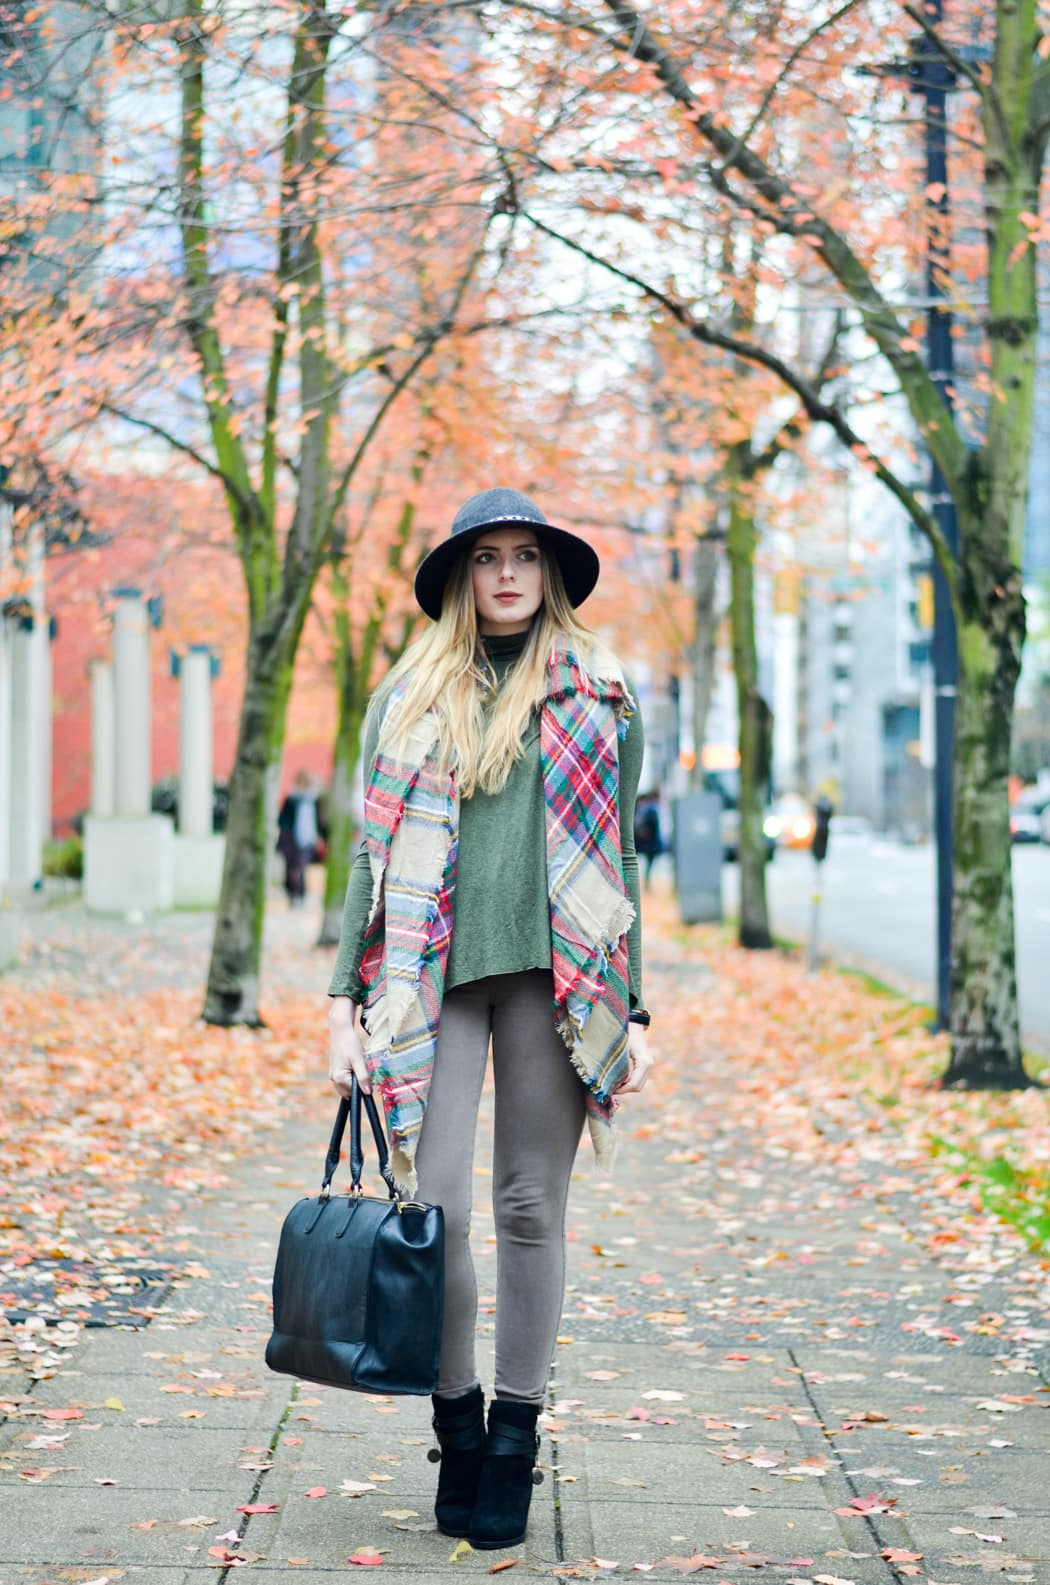 Fall Style Staples for Rain-Proof Outfits